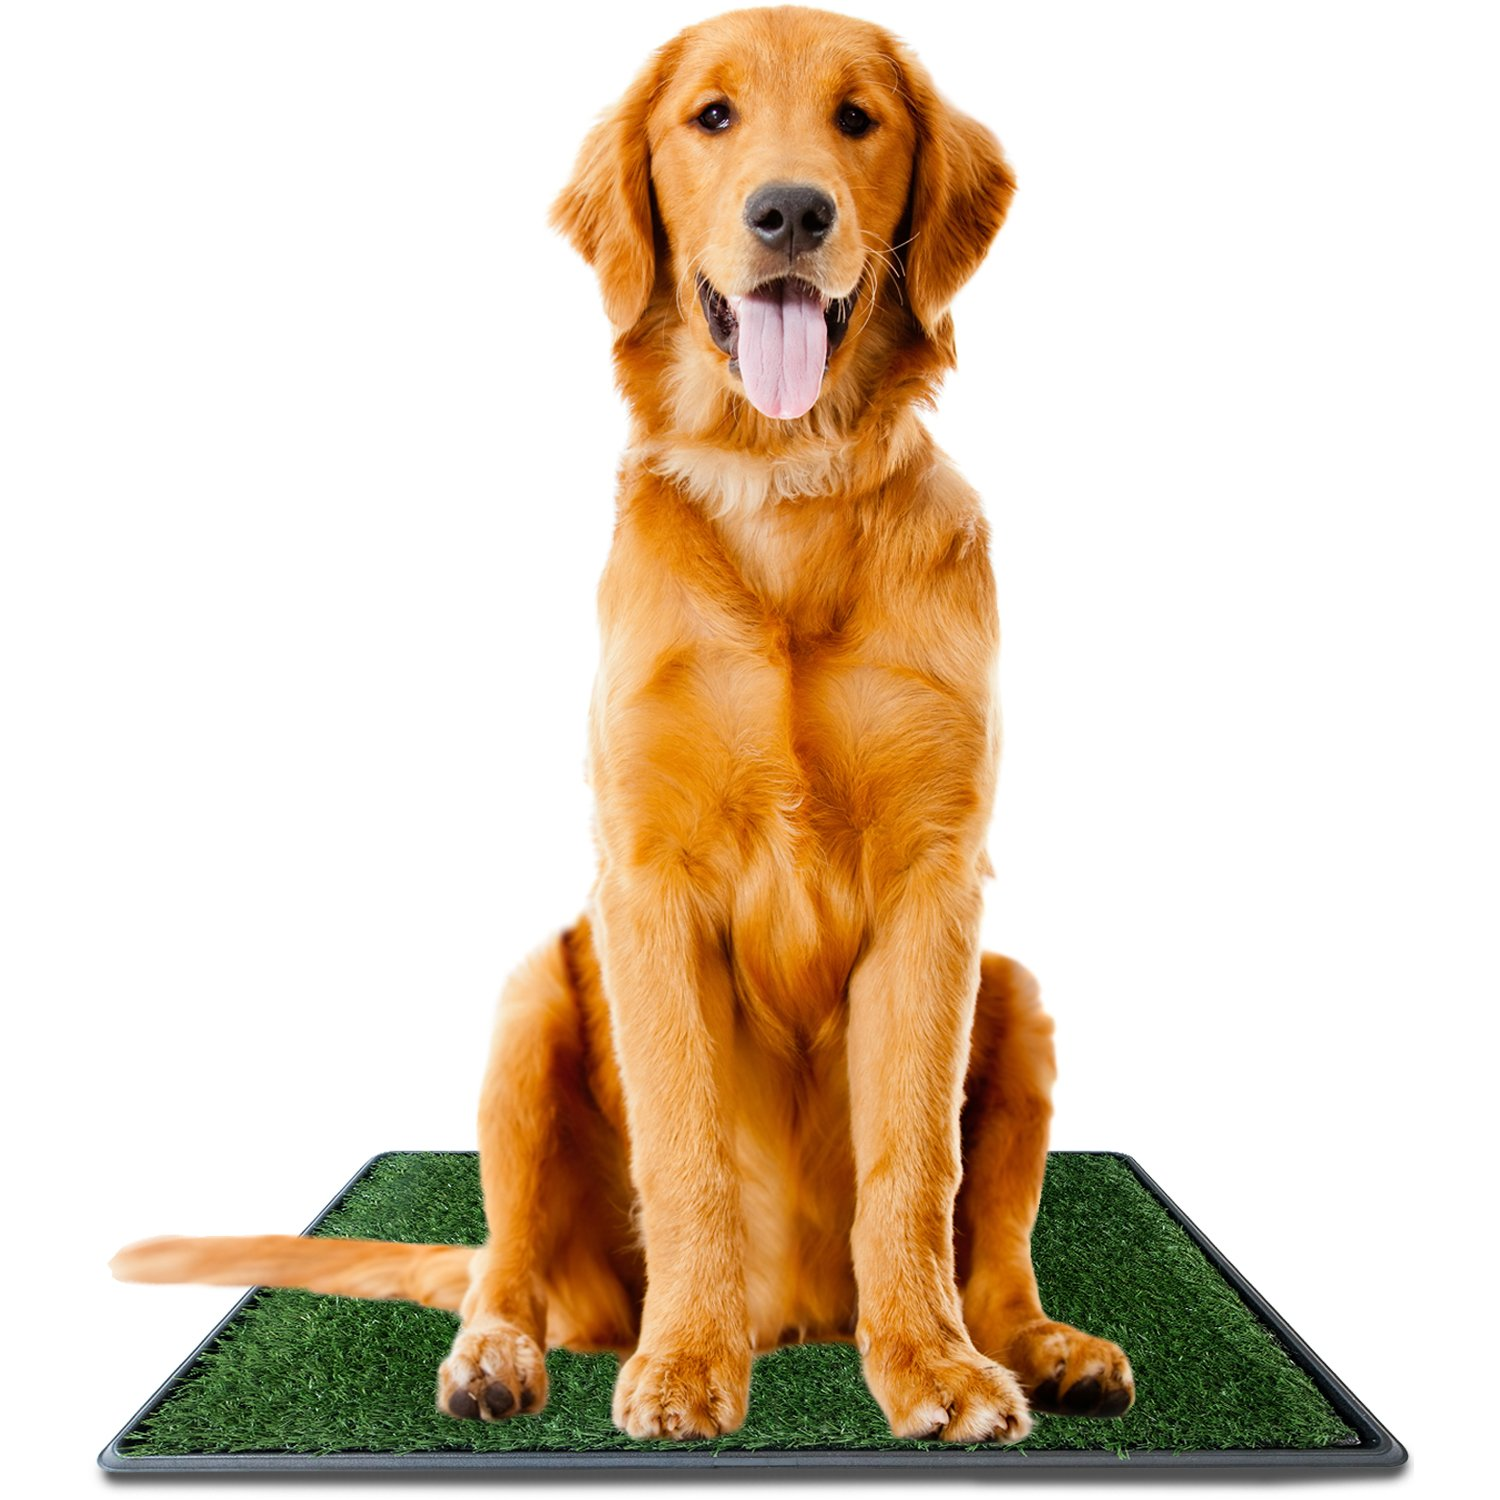 Ideas In Life Dog Potty Grass Pee Pad - Artificial Pet Grass Patch for Dogs Indoor Outdoor Litter Box Large 30 inch x 20 inch - e-Book for Potty Training by Ideas In Life